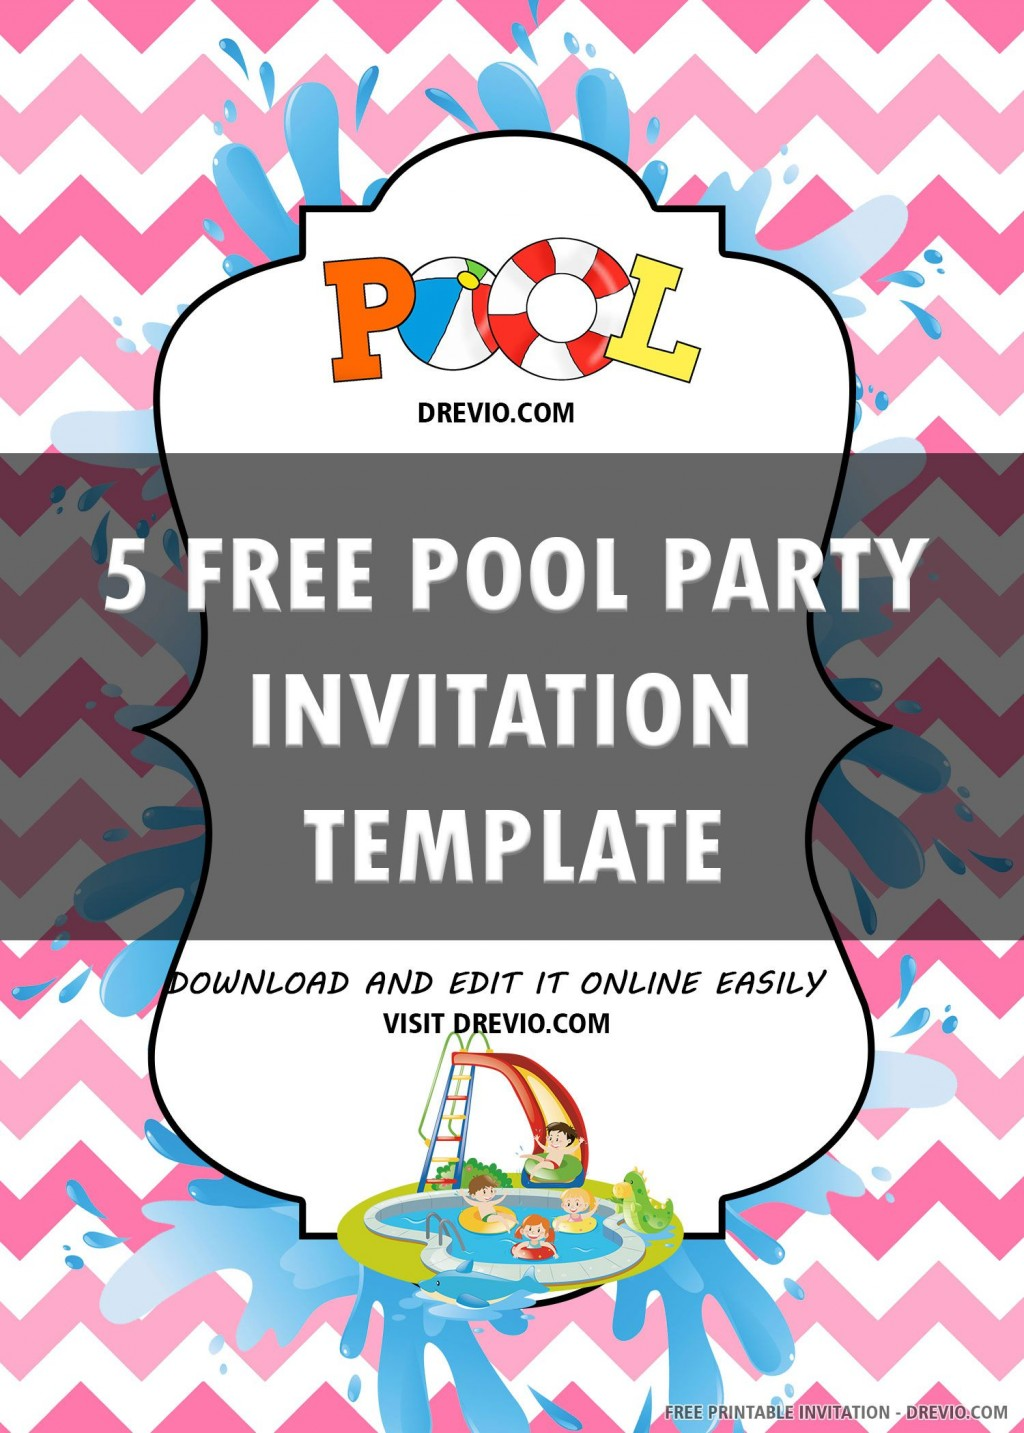 006 Simple Free Pool Party Invitation Template Printable Highest Quality  Card SummerLarge